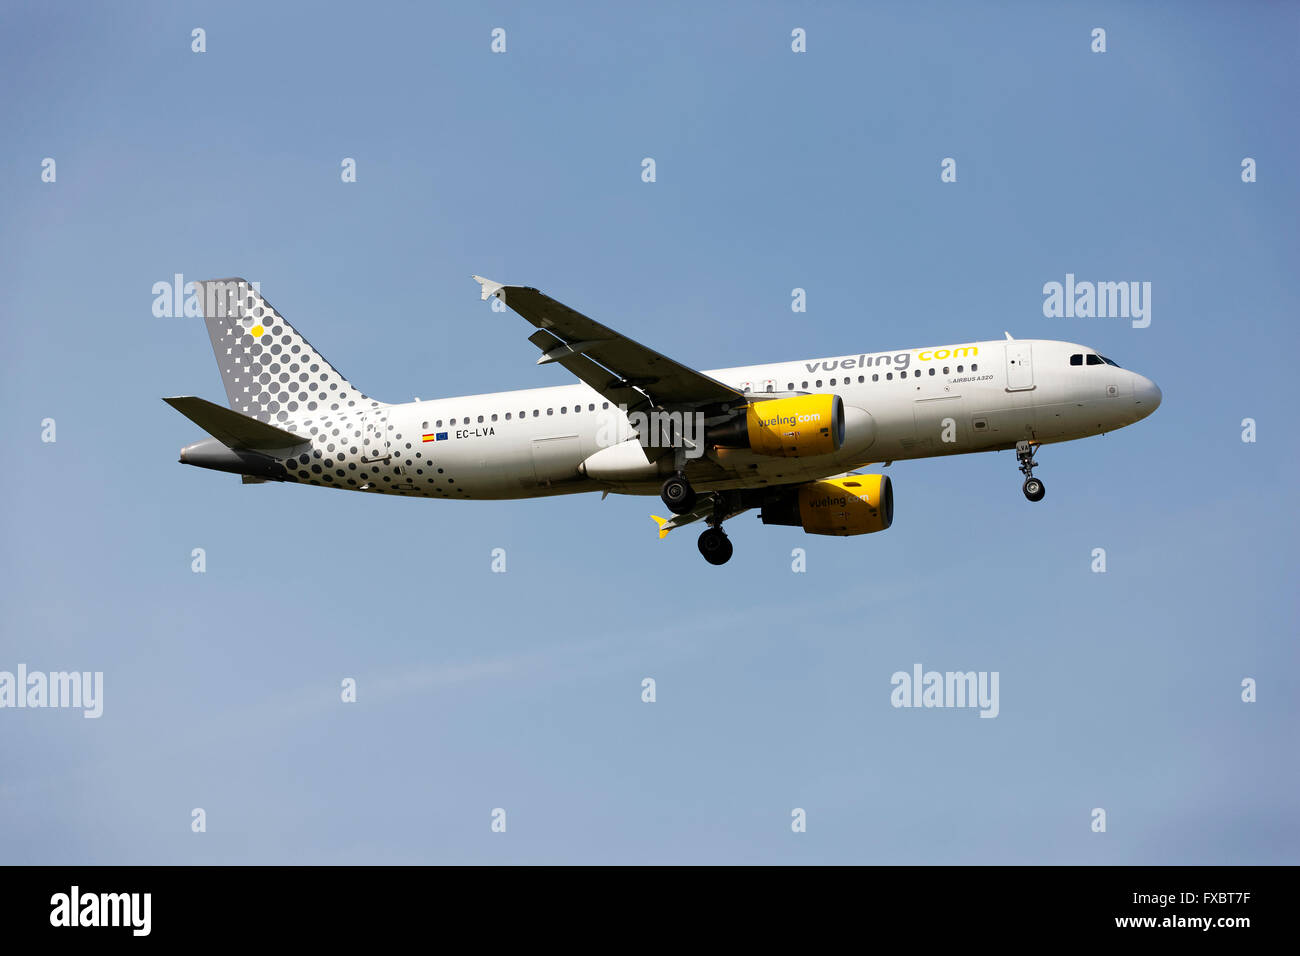 Vueling Airlines A320 Airbus on landing approach to  Franz Josef Strauss Airport, Munich, Upper Bavaria, Germany, - Stock Image